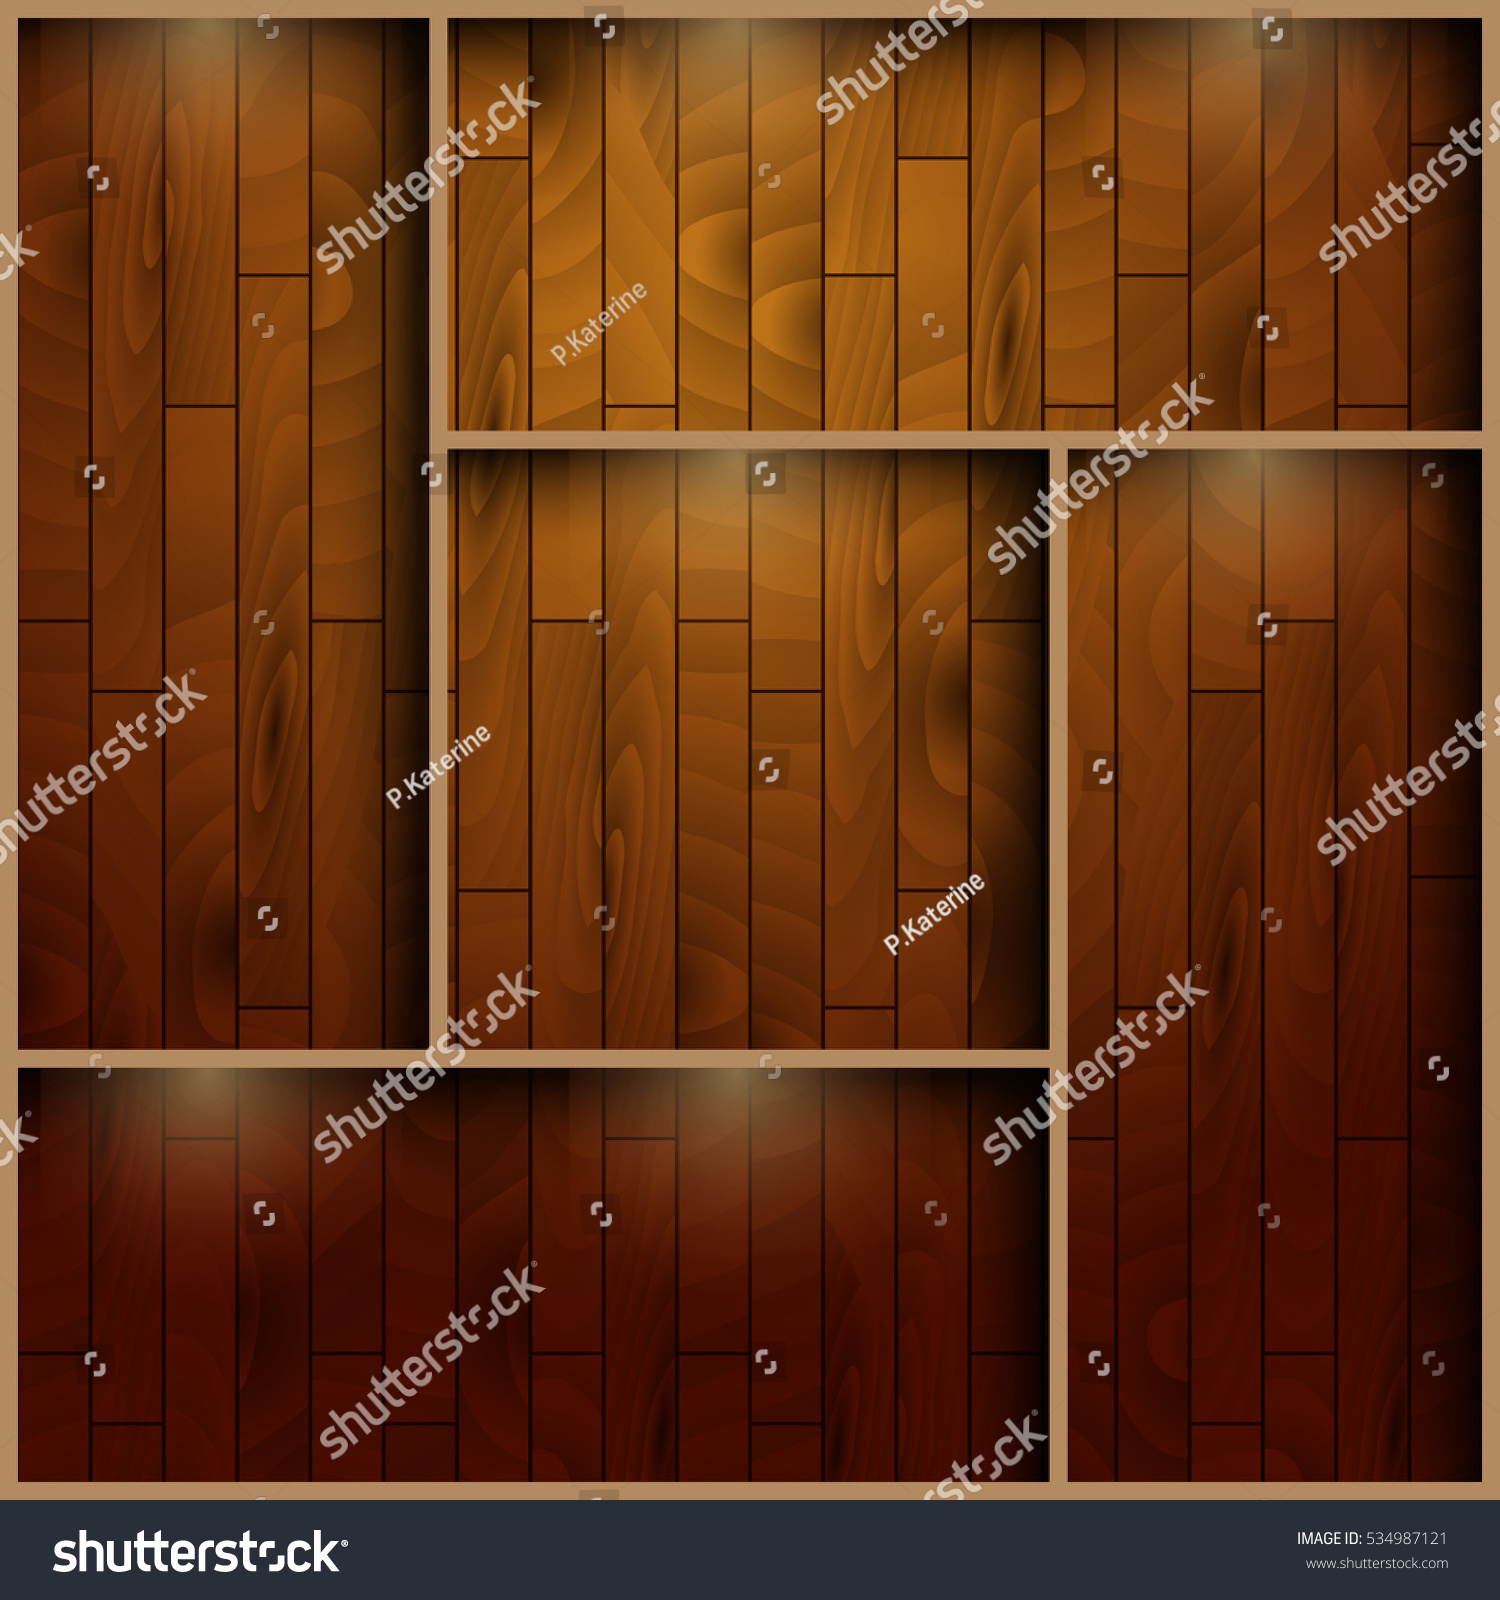 Interior wooden shelves free vector - Wooden Vector Shelf In Dark Brown Colors With Light Projector For Gallery Library